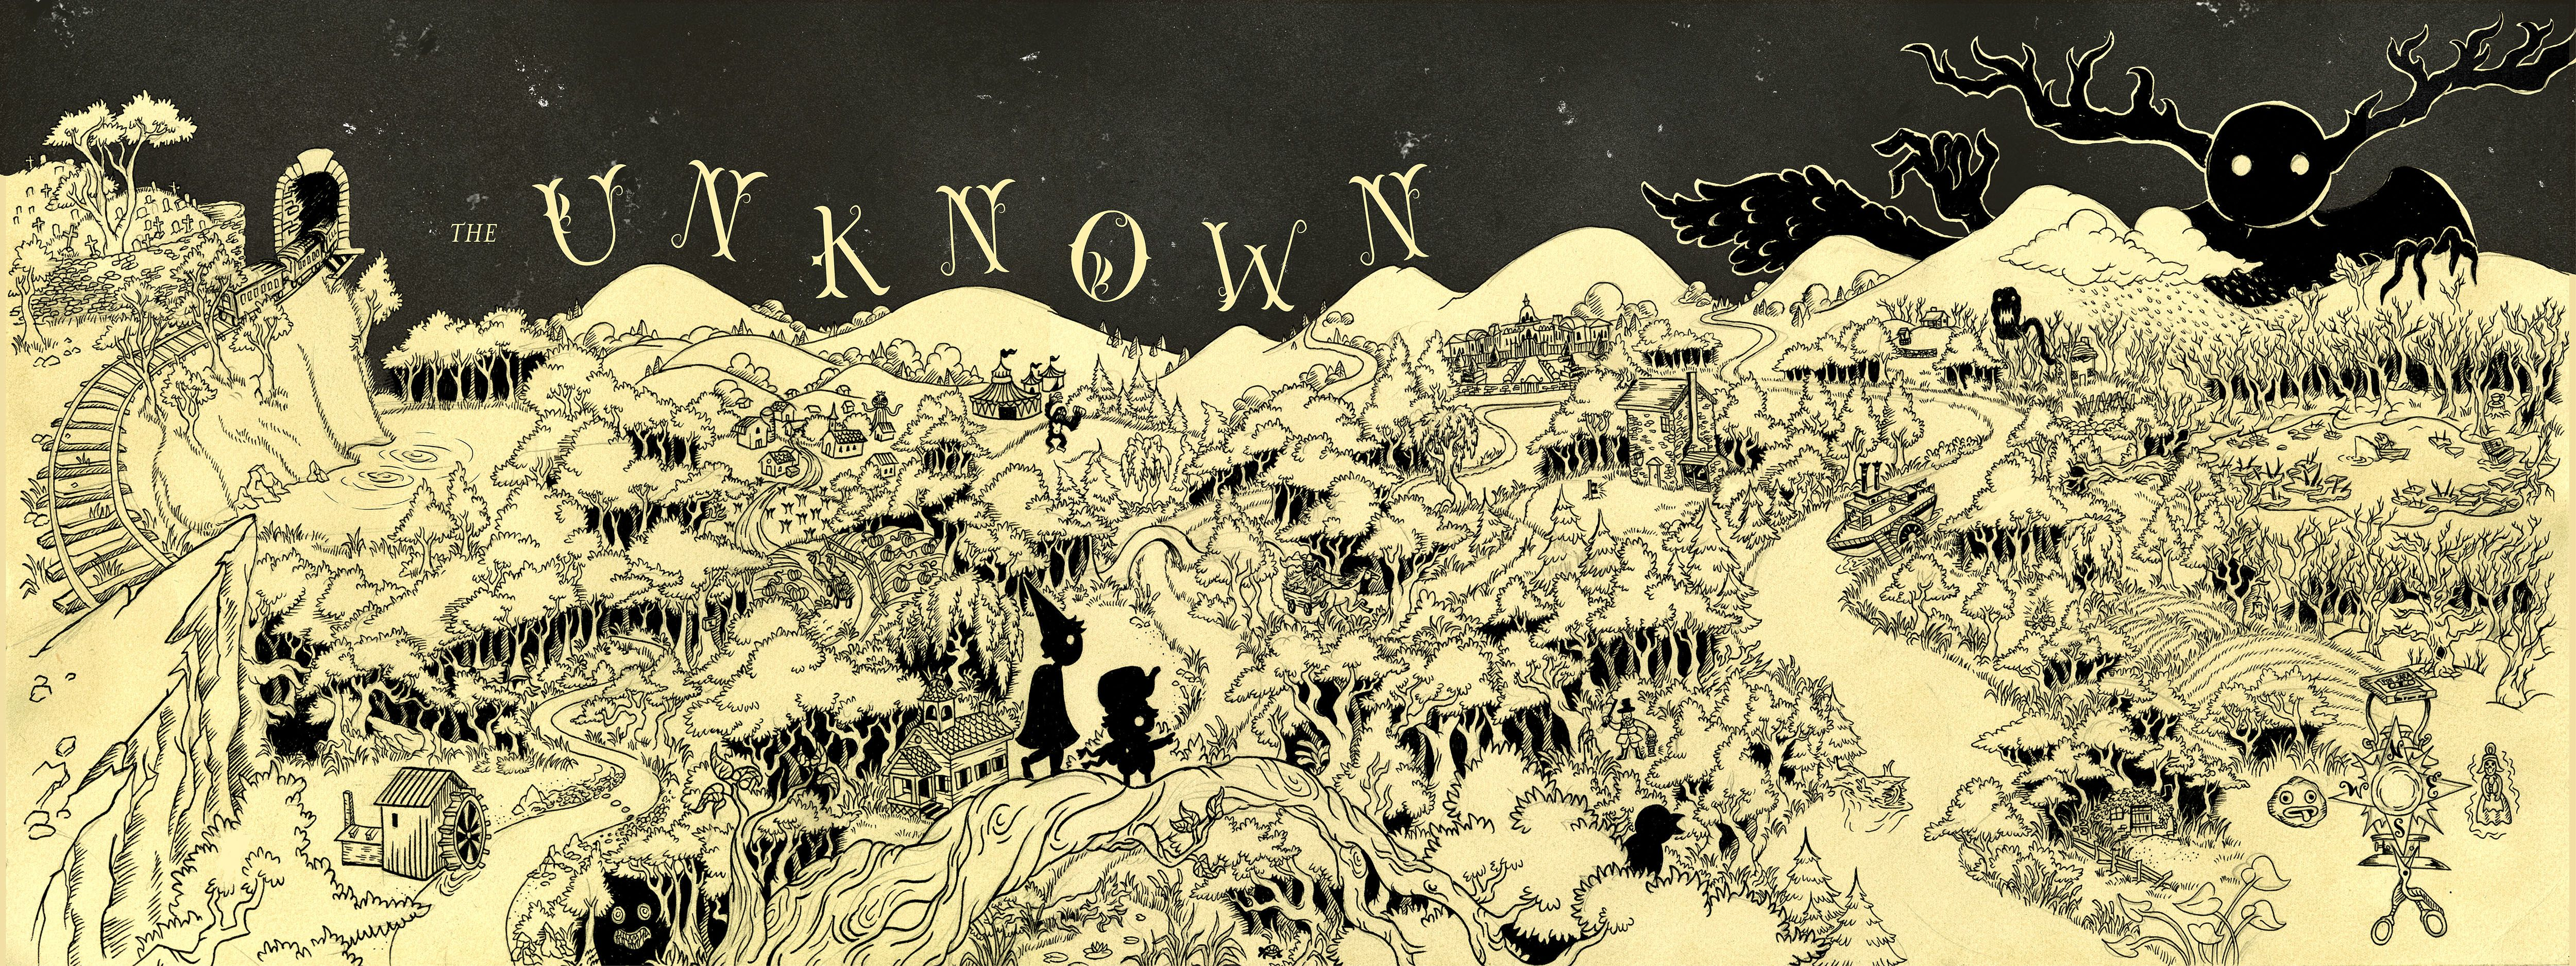 maps_the_unknown_final_1_with_type_6-25_inches_high.jpg (5000×1875)